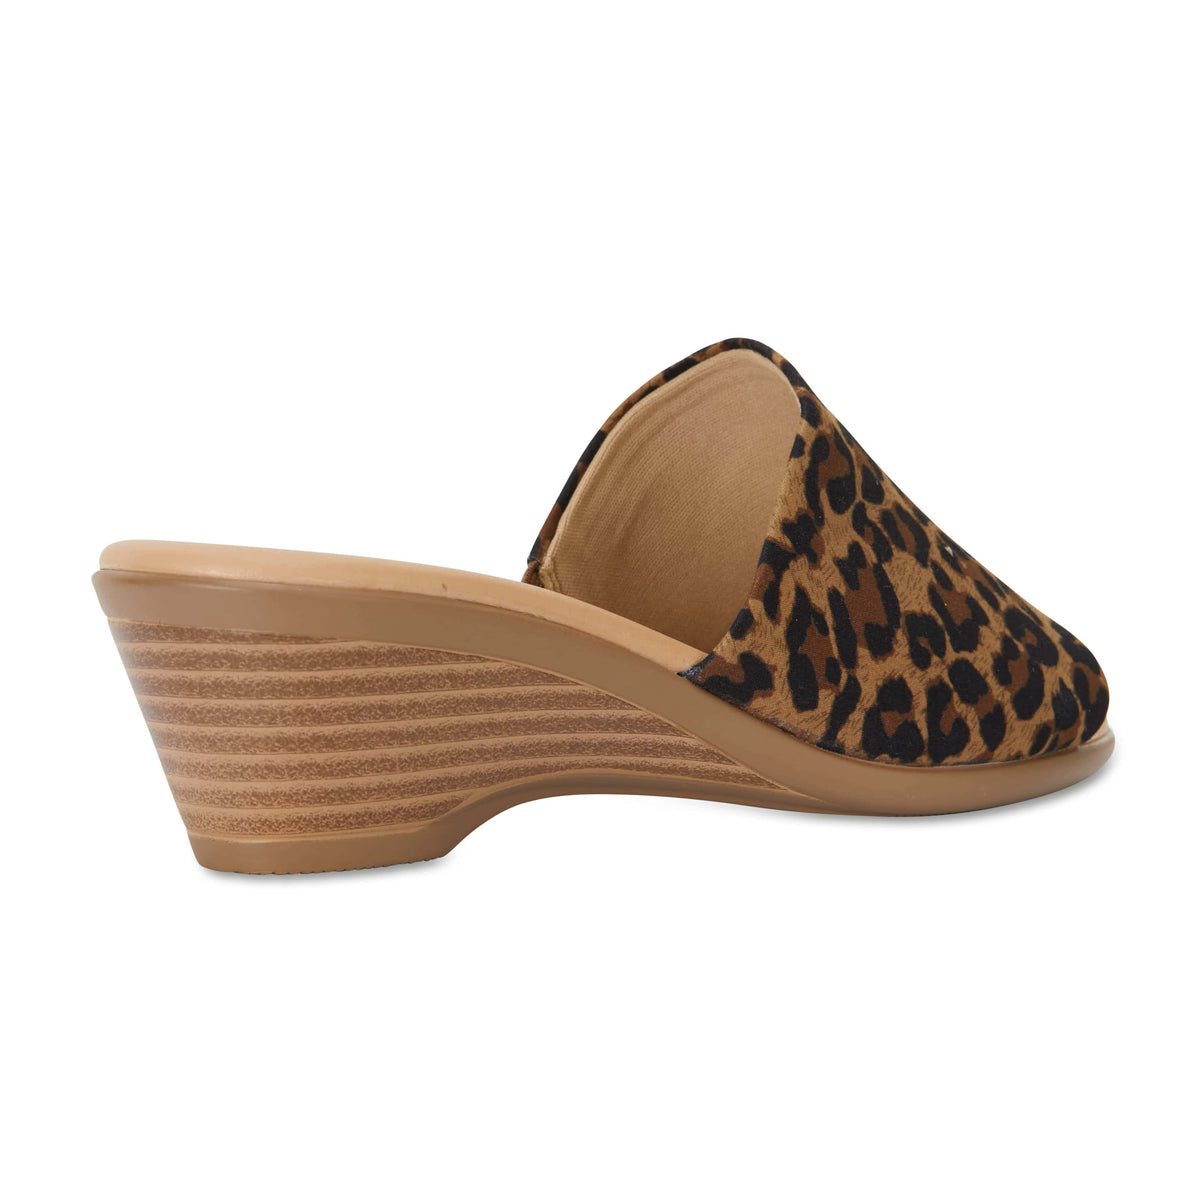 Orient Heel in Animal Fabric